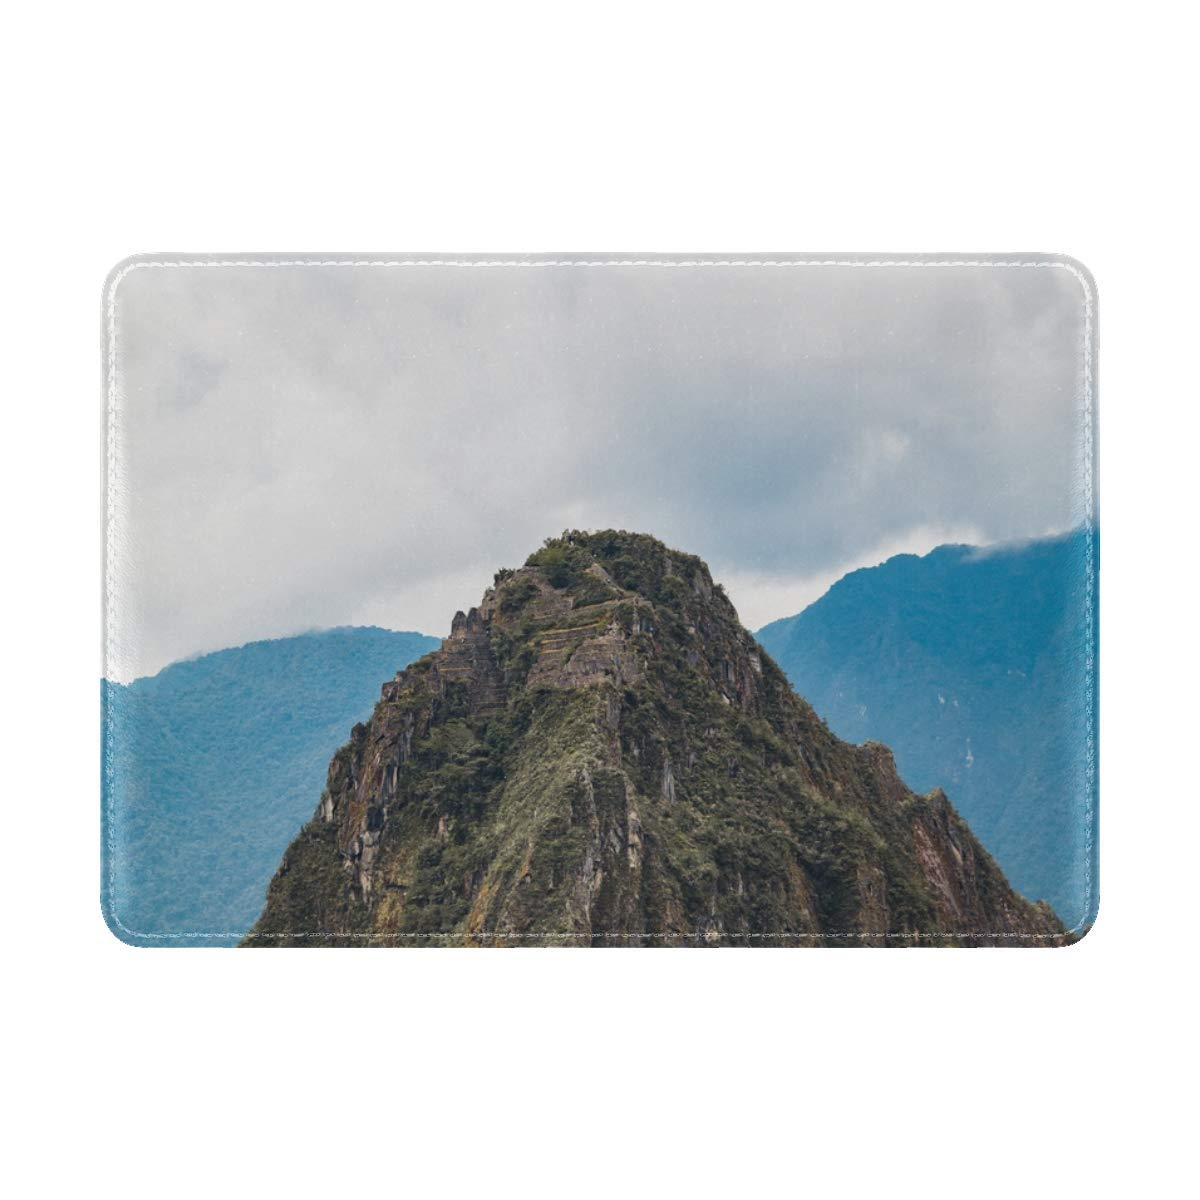 Mountains Rock Peak Leather Passport Holder Cover Case Travel One Pocket